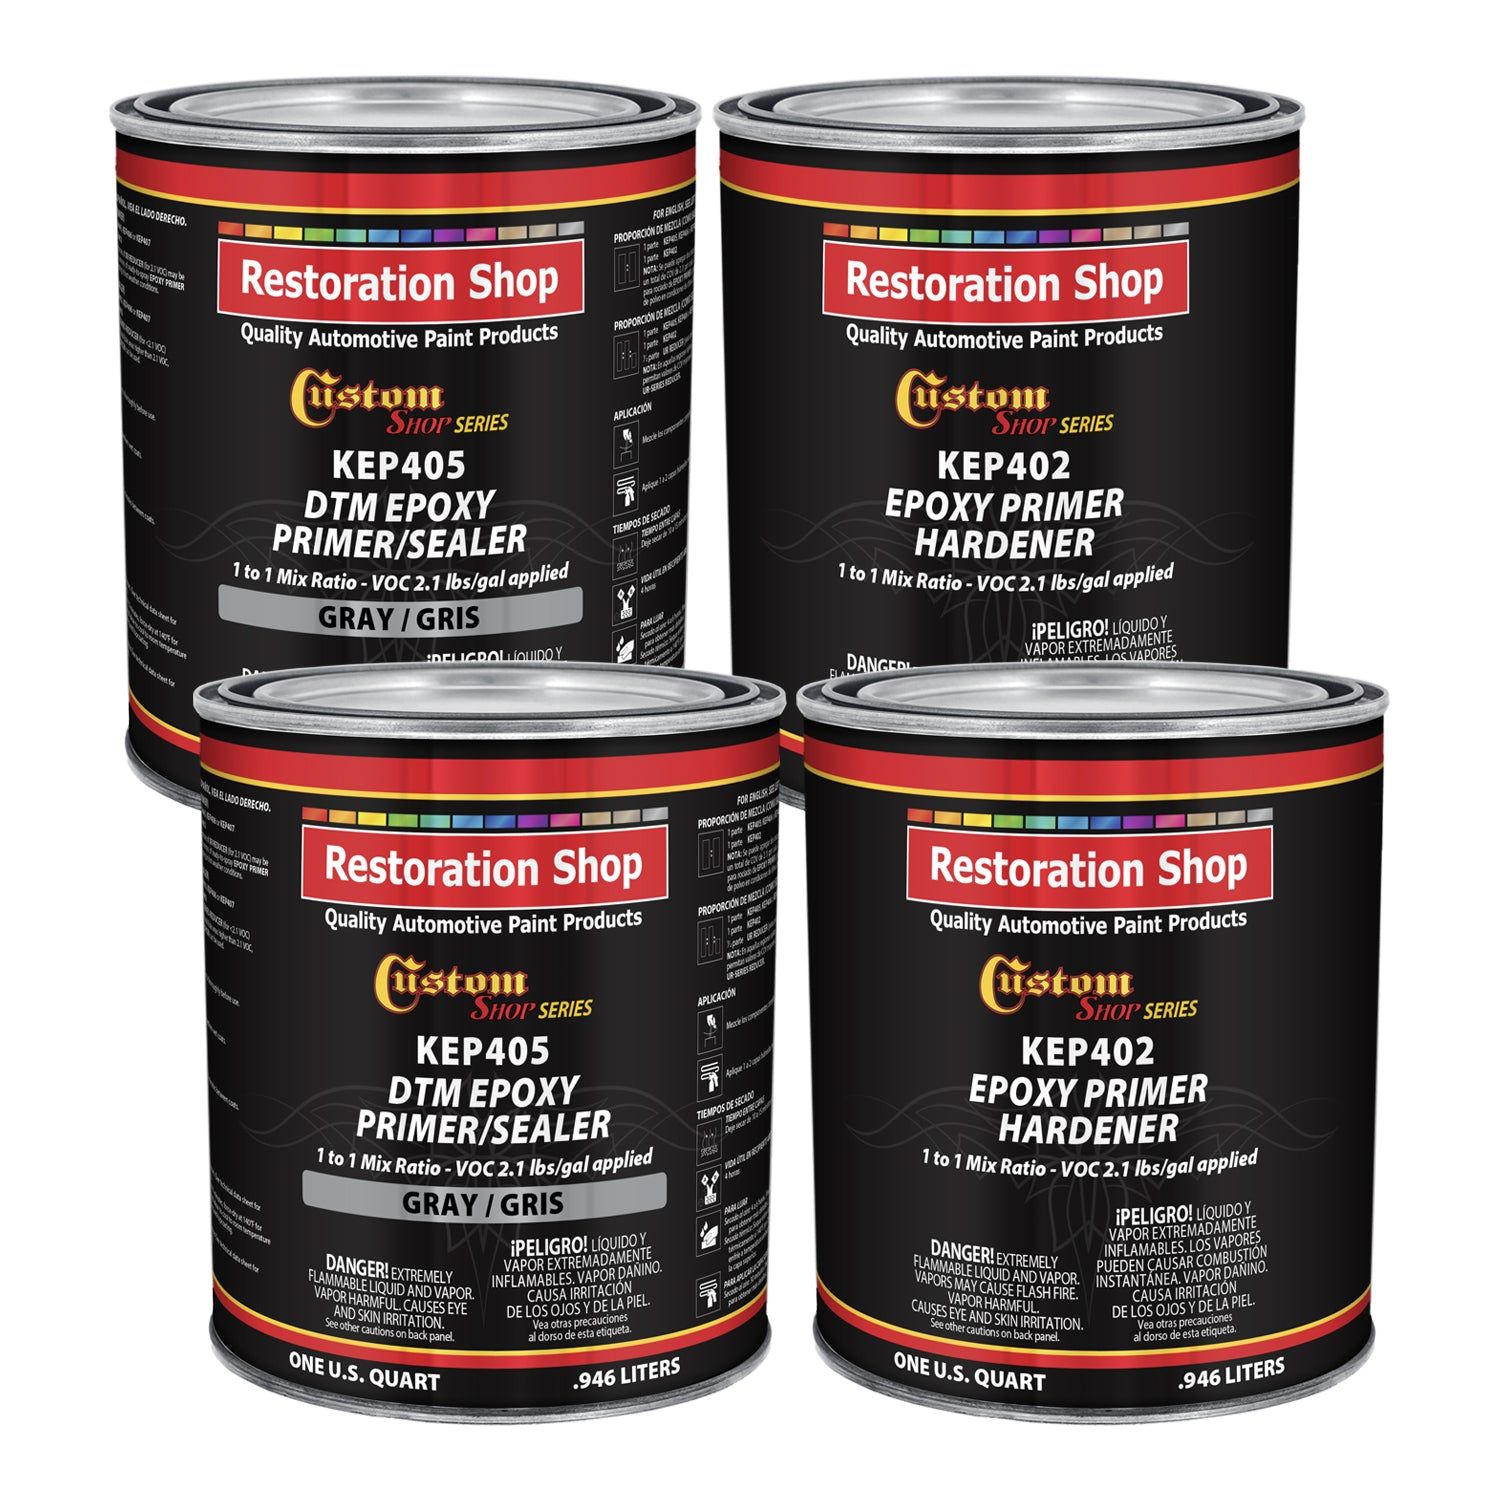 GRAY Epoxy Primer / Sealer 2.1 VOC (GALLON KIT) - Anti-Corrosive DTM Direct to Metal Fast Dry Primer